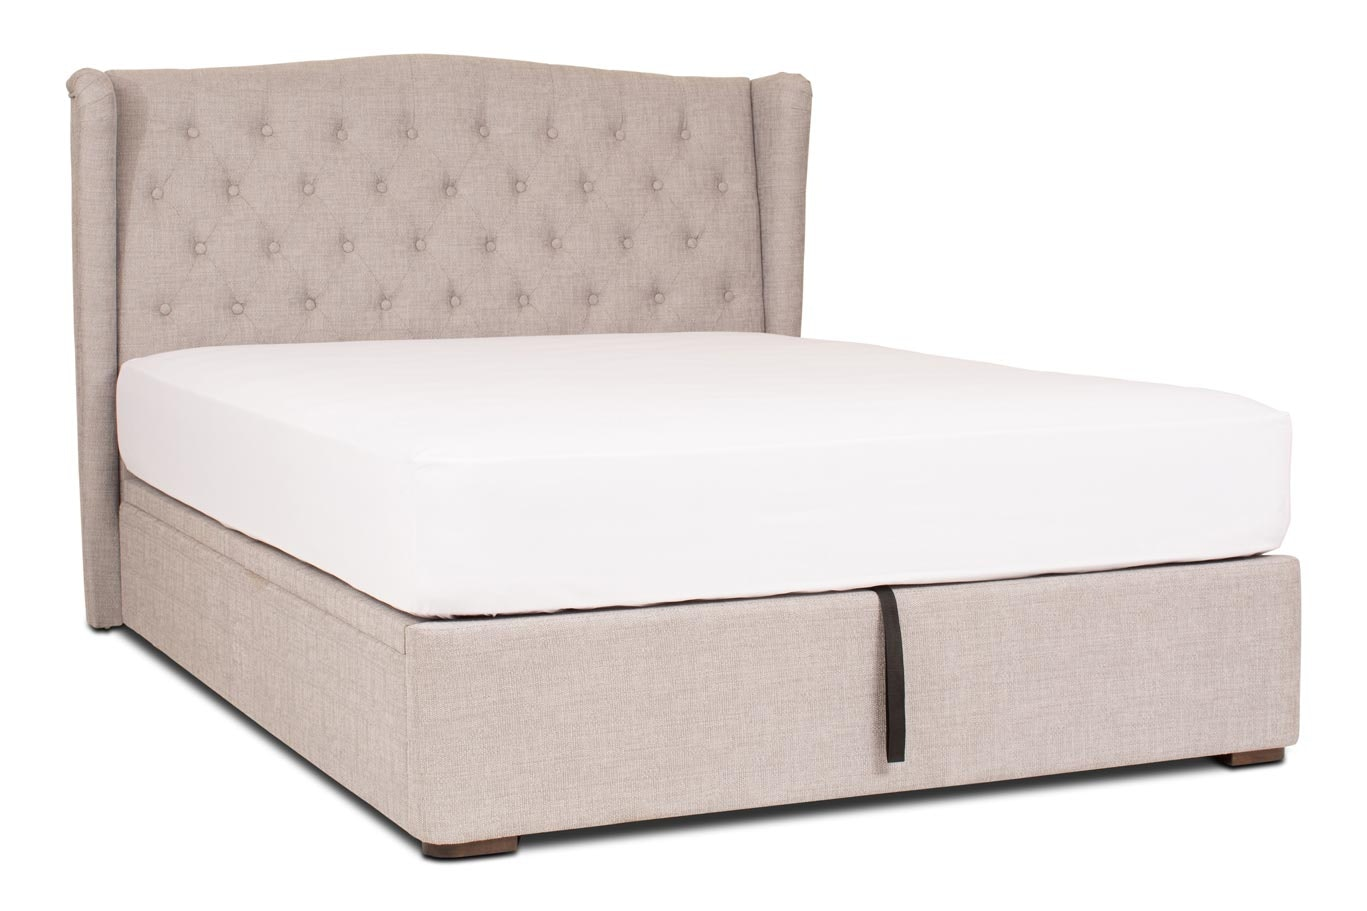 Duval Ottoman Bed with Winged Headboard | 4Ft6 | Grey